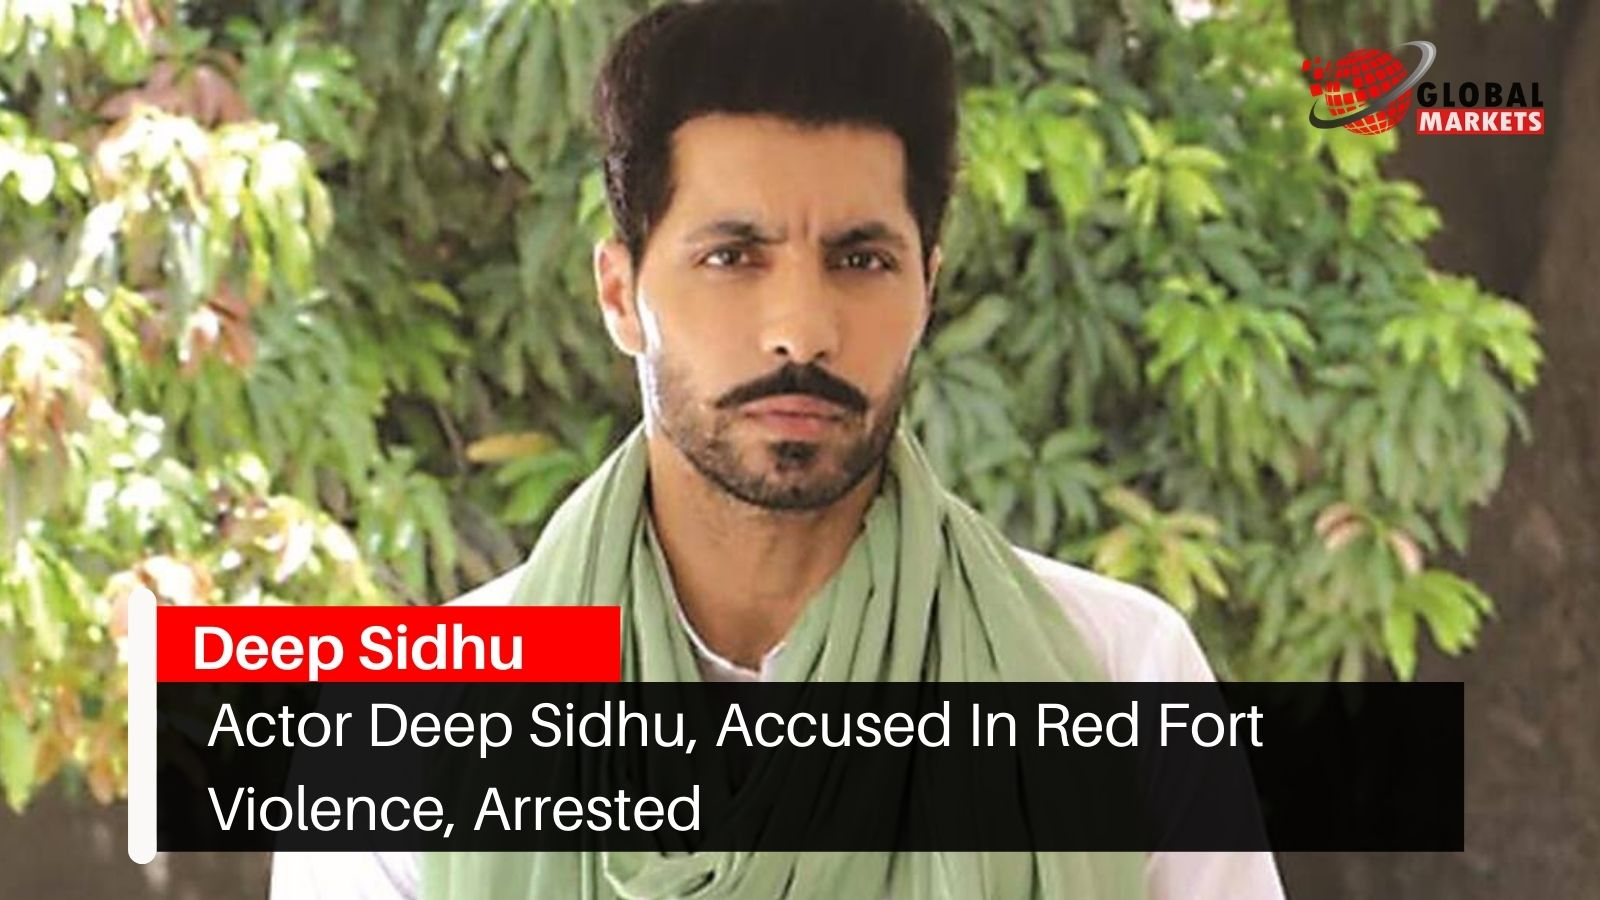 Actor Deep Sidhu, Accused In Red Fort Violence, Arrested